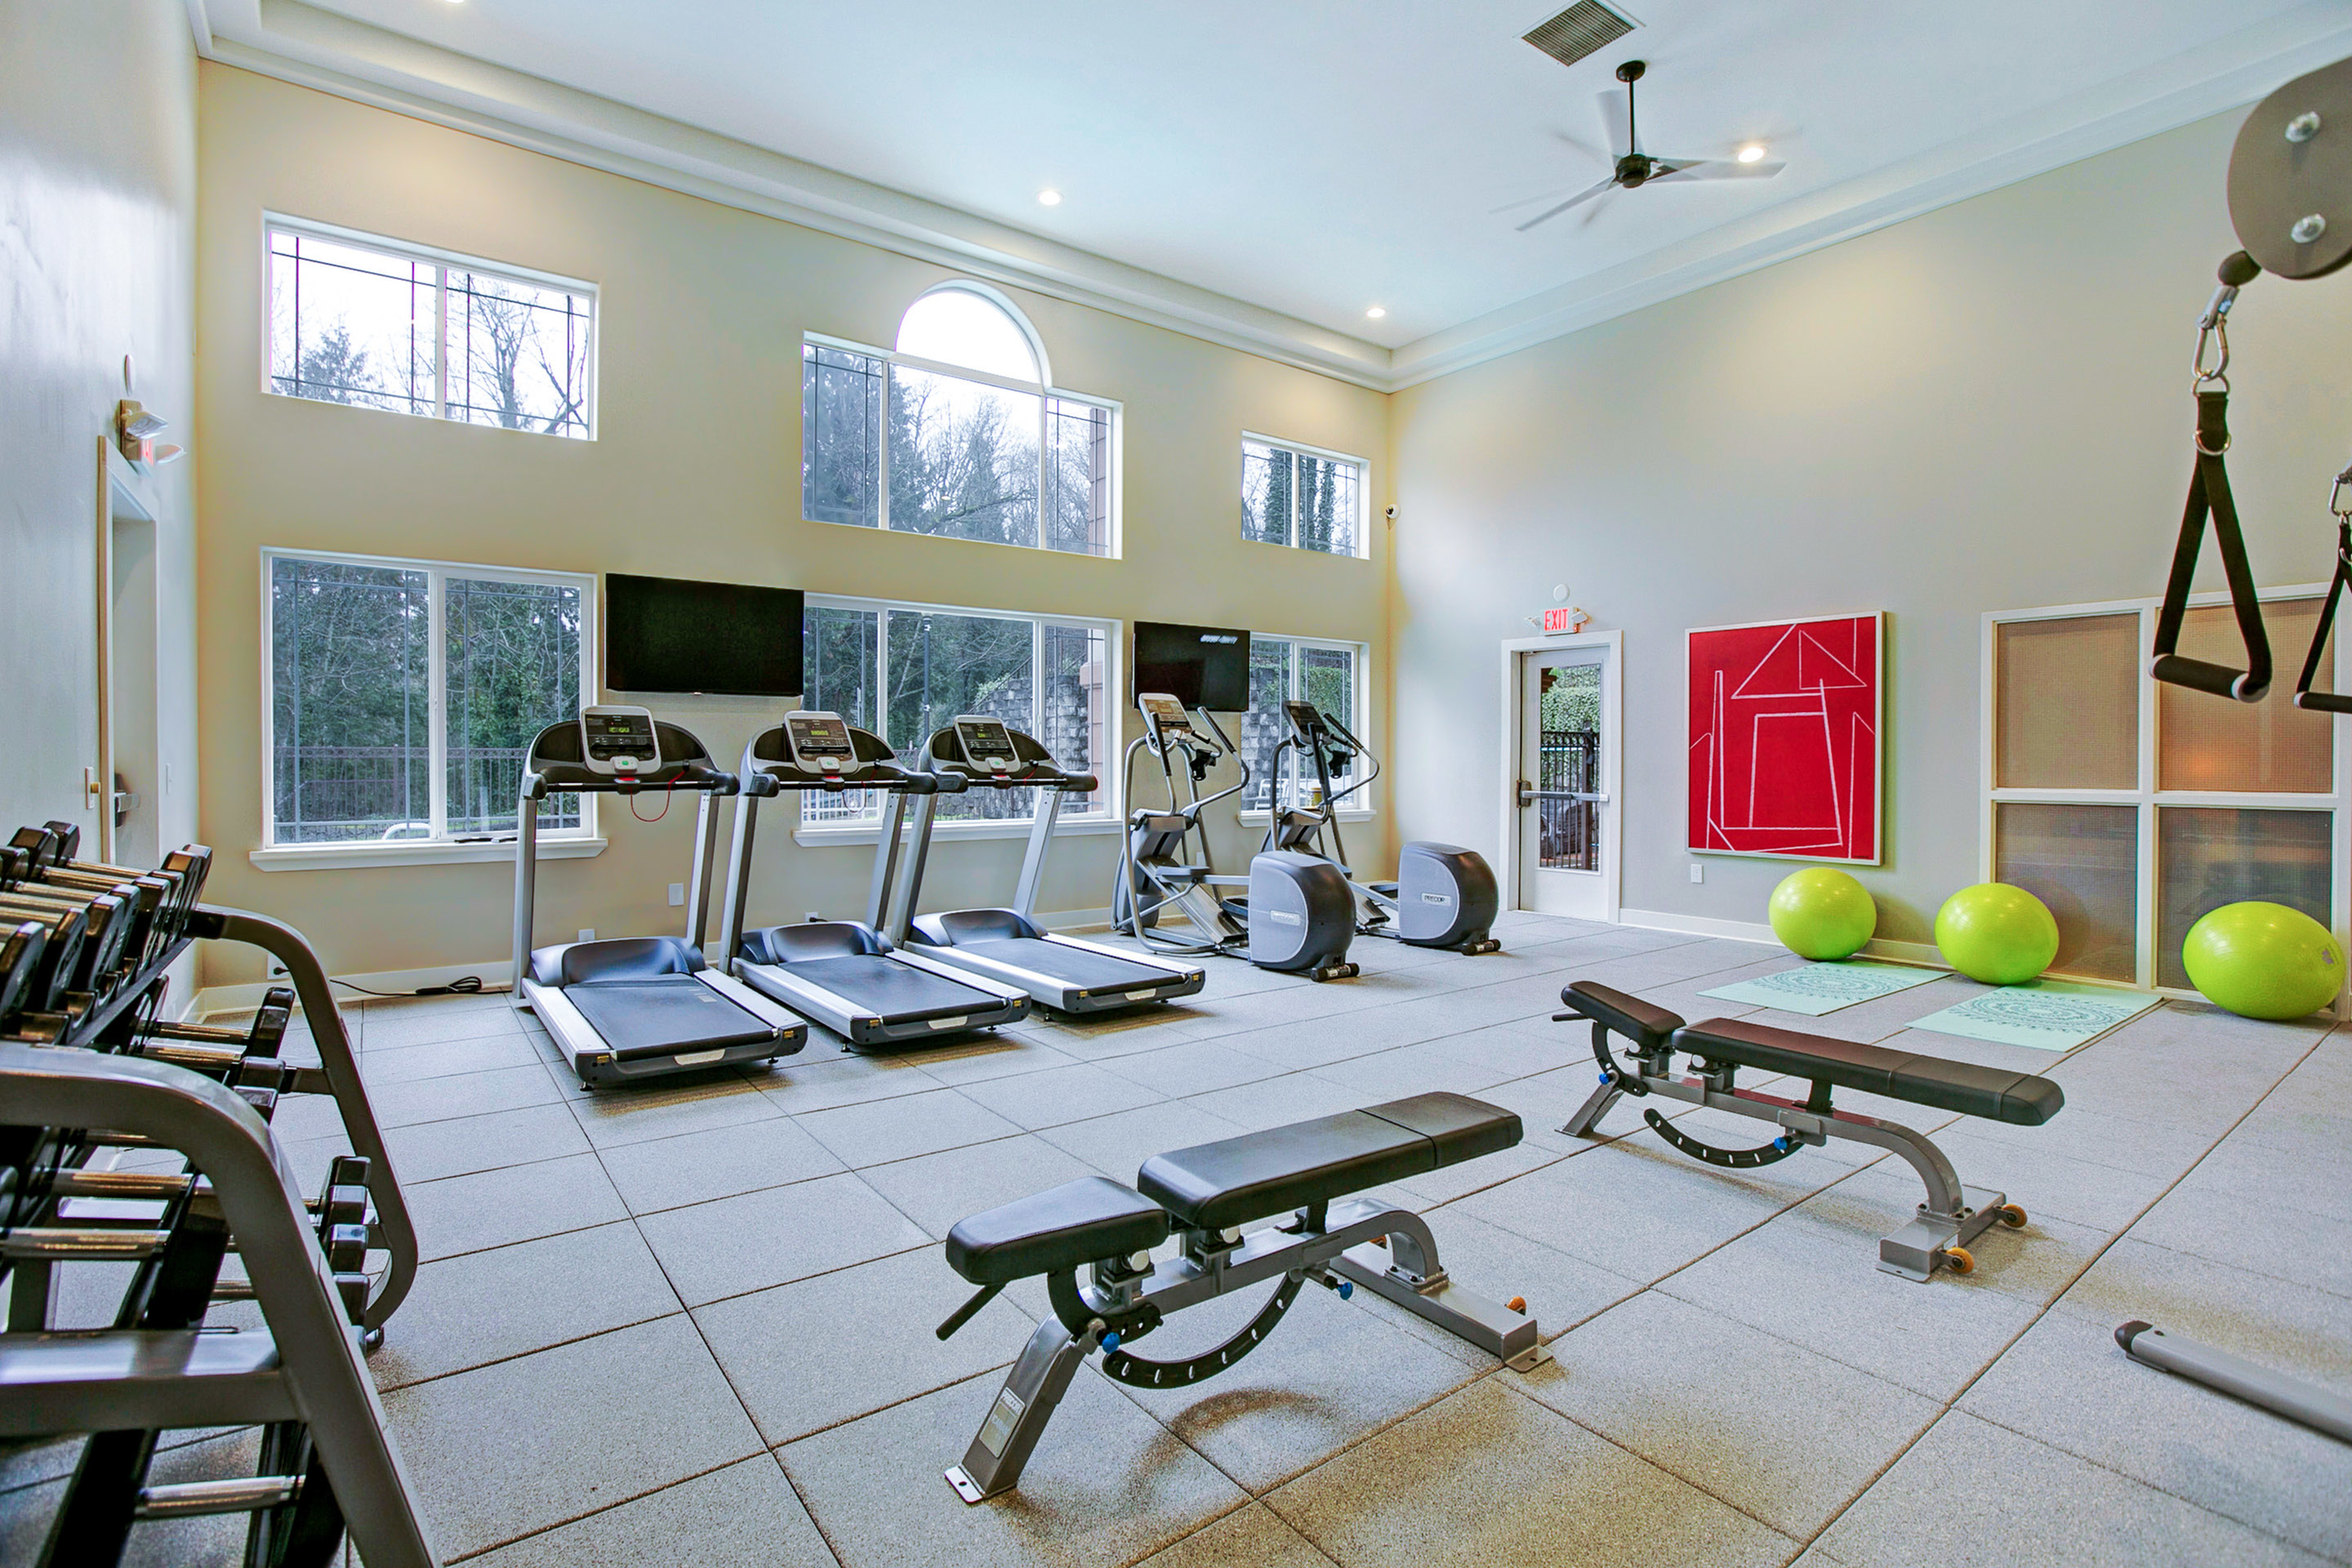 Image of Brand-New 24-Hour Fitness Studio for Scott Mountain